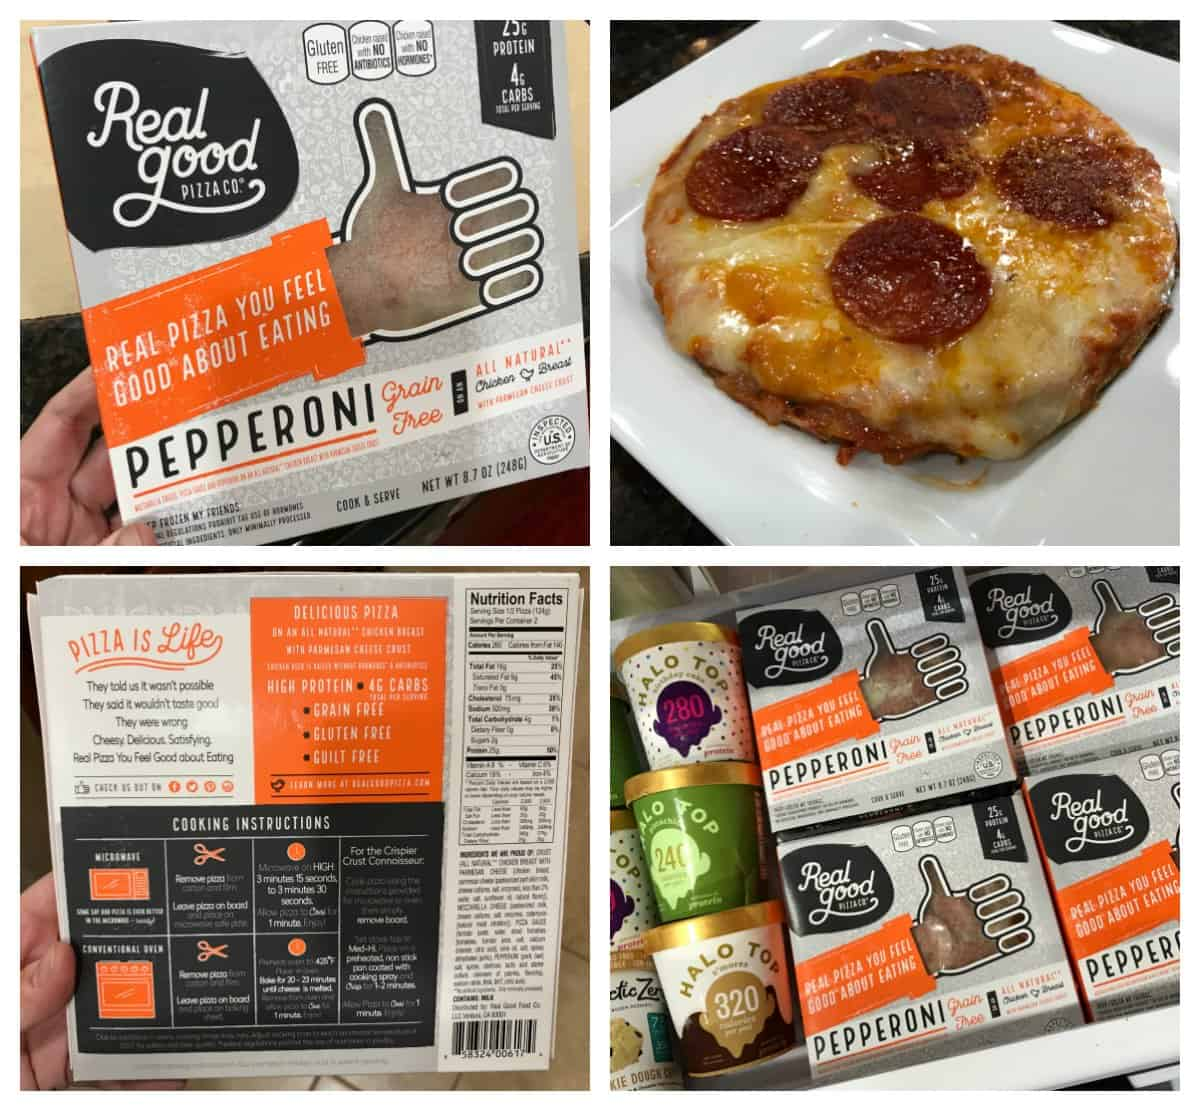 Real Good Foods Pepperoni Pizza